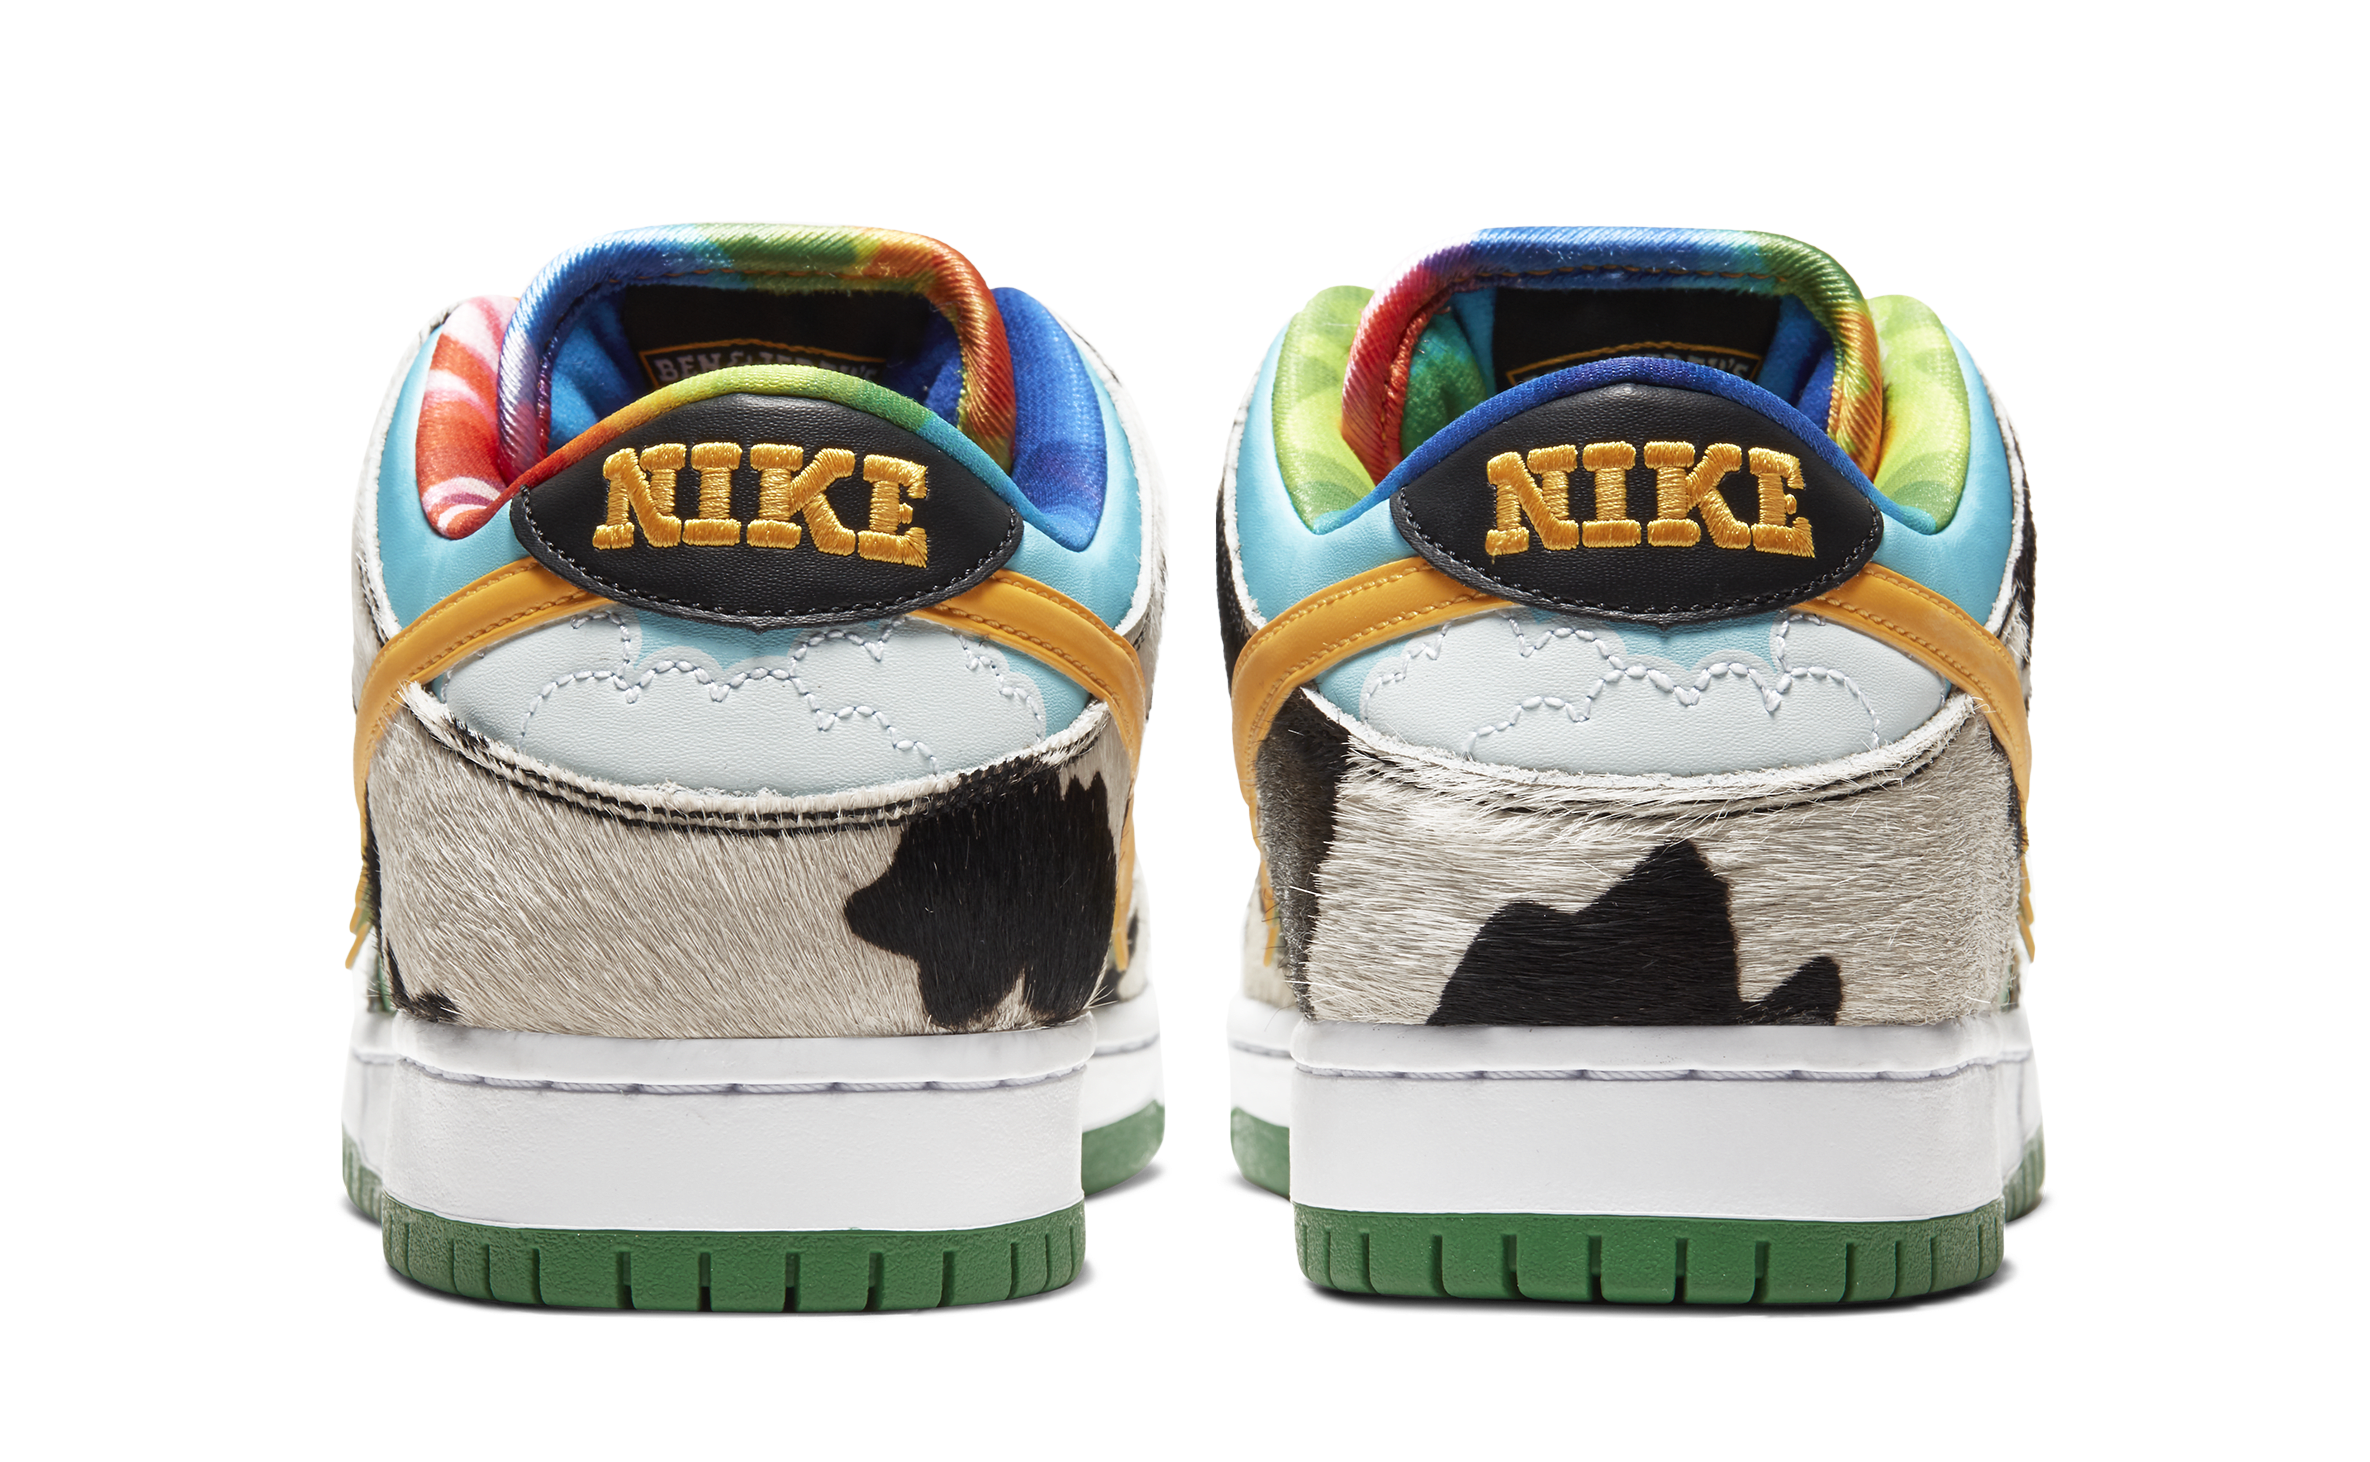 Ben and Jerry's x Nike SB Dunk Low 'Chunky Dunky' CU3244-100 (Heels)